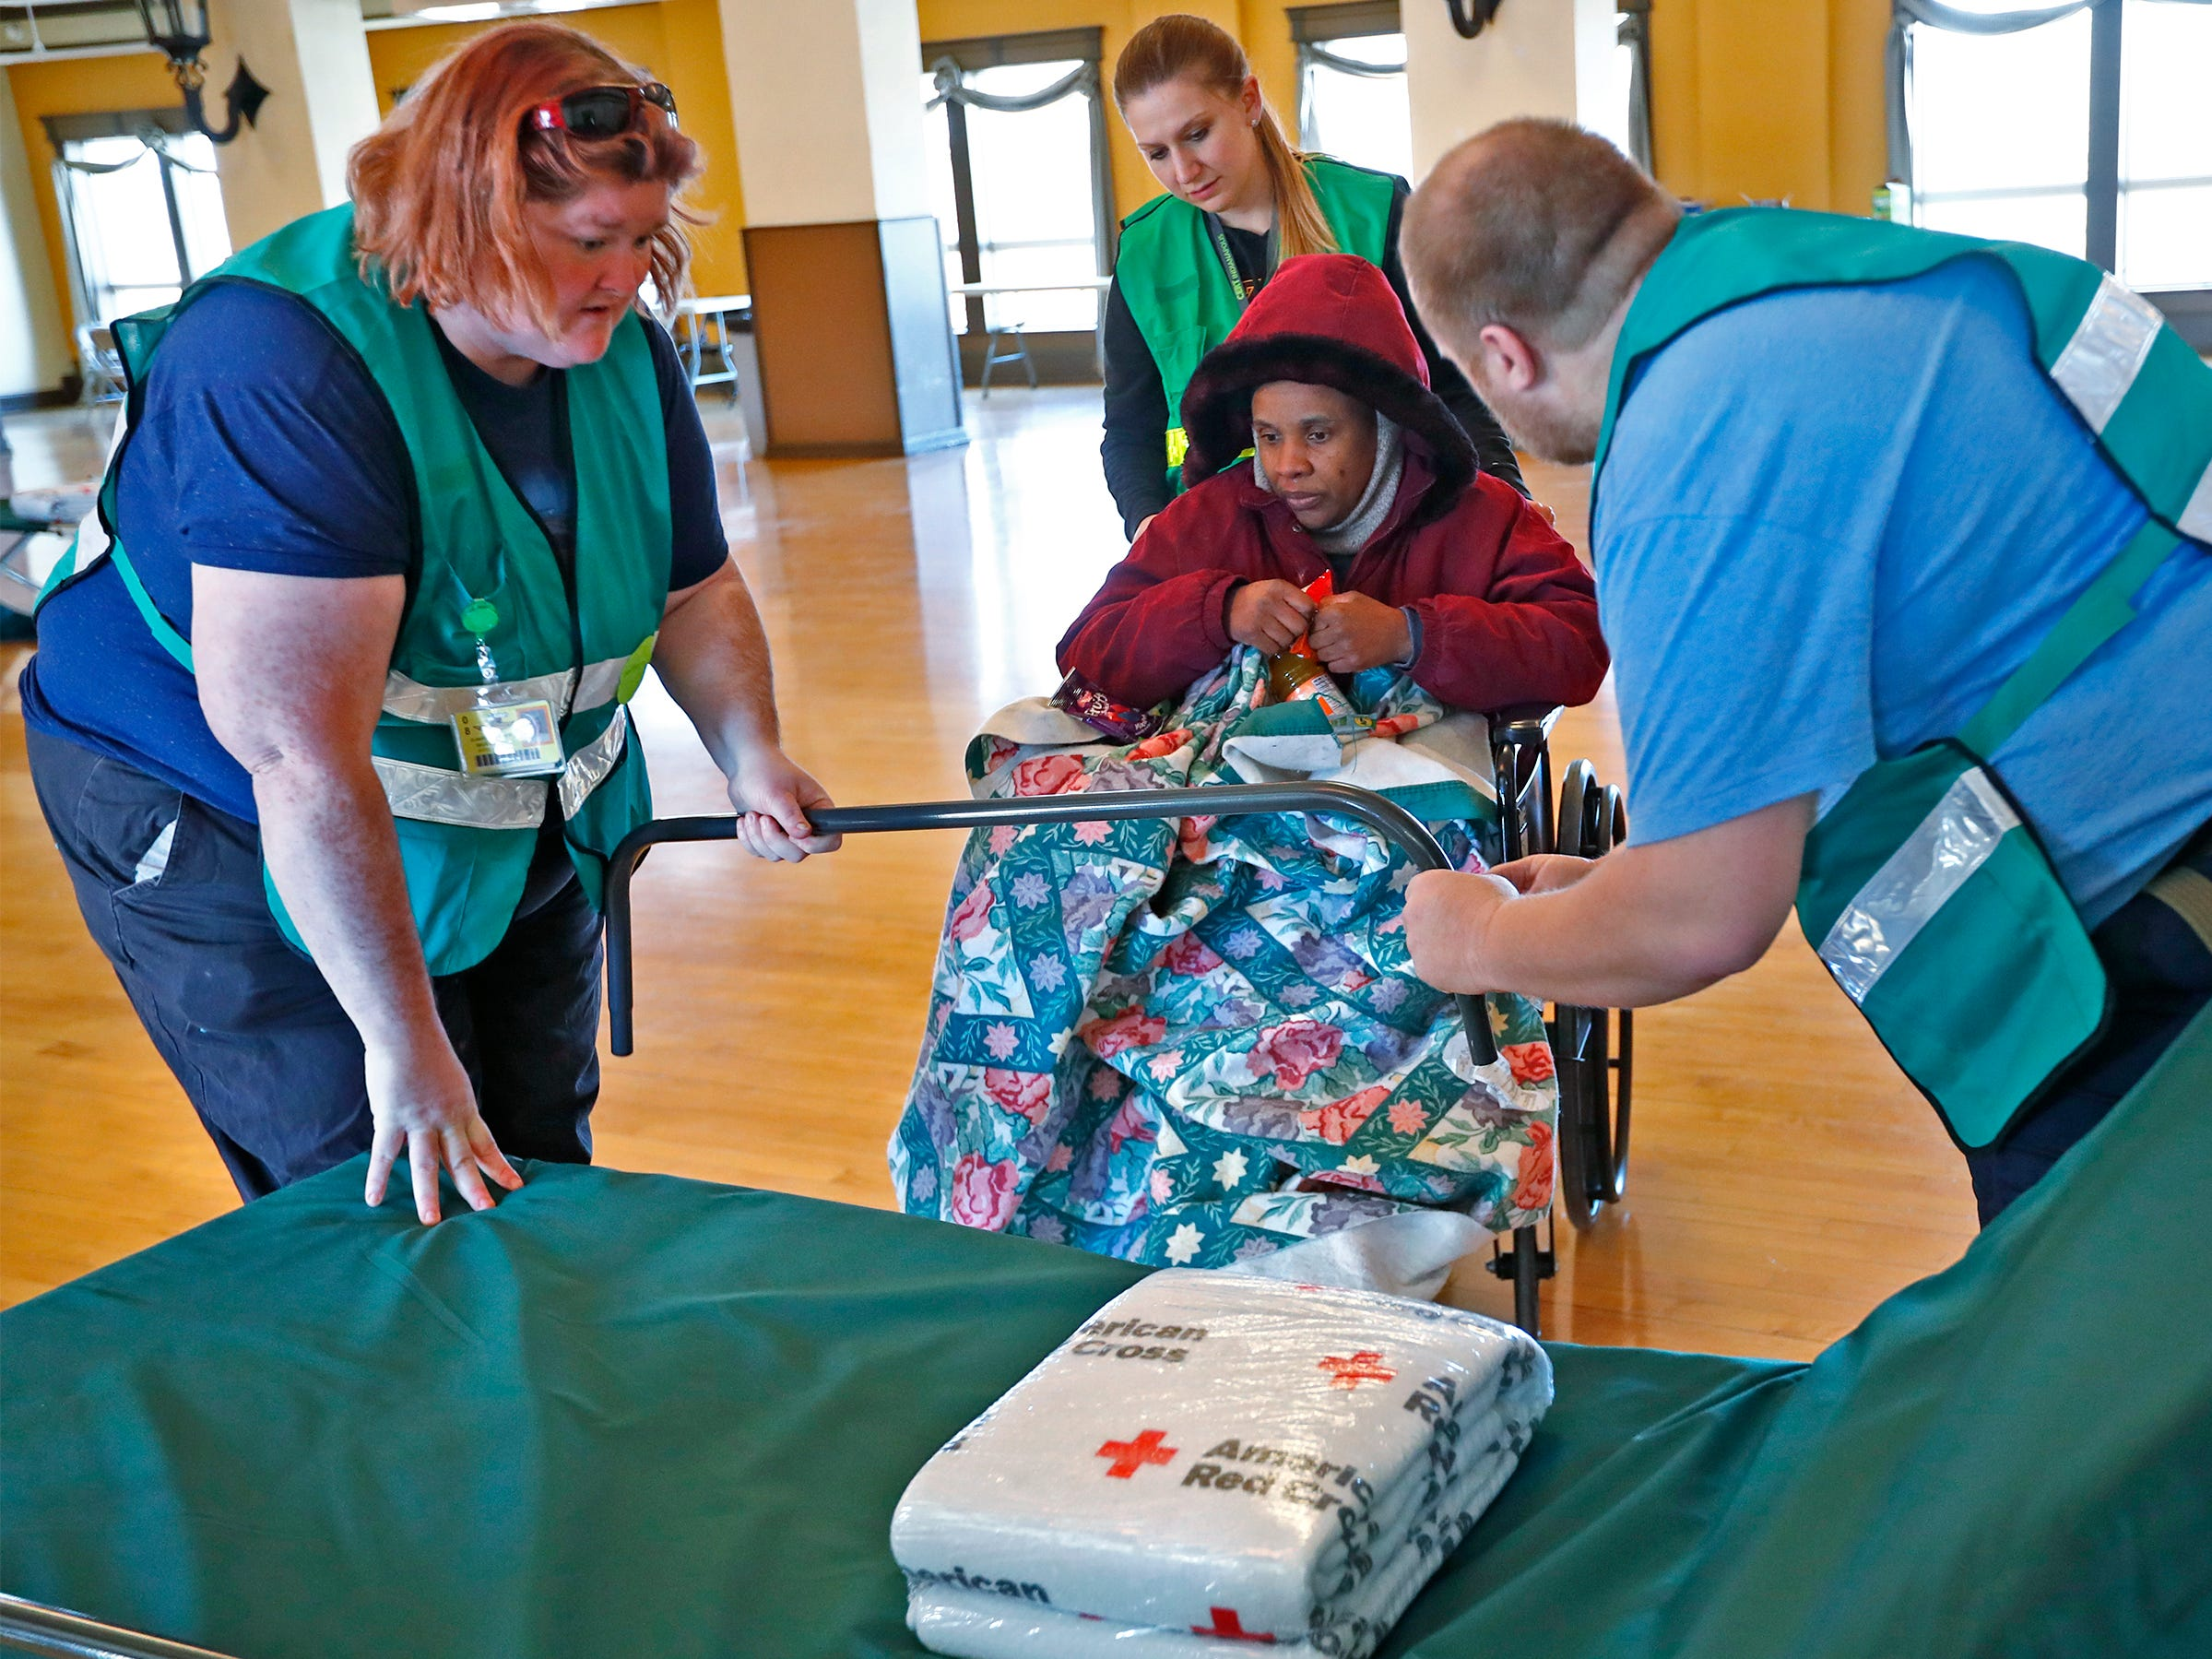 Tara Drain, center, being pushed by CERT volunteer Amanda Burris, waits as CERT volunteers Heather Clampitt, left, and Joseph Clampitt, right, ready a specialized cot for Drain, at a Community Emergency Response Team warming center at the Municipal Gardens, 1831 Lafayette Rd., Wednesday, Jan. 30, 2019.  Wind chills made it feel like almost 30 below zero.